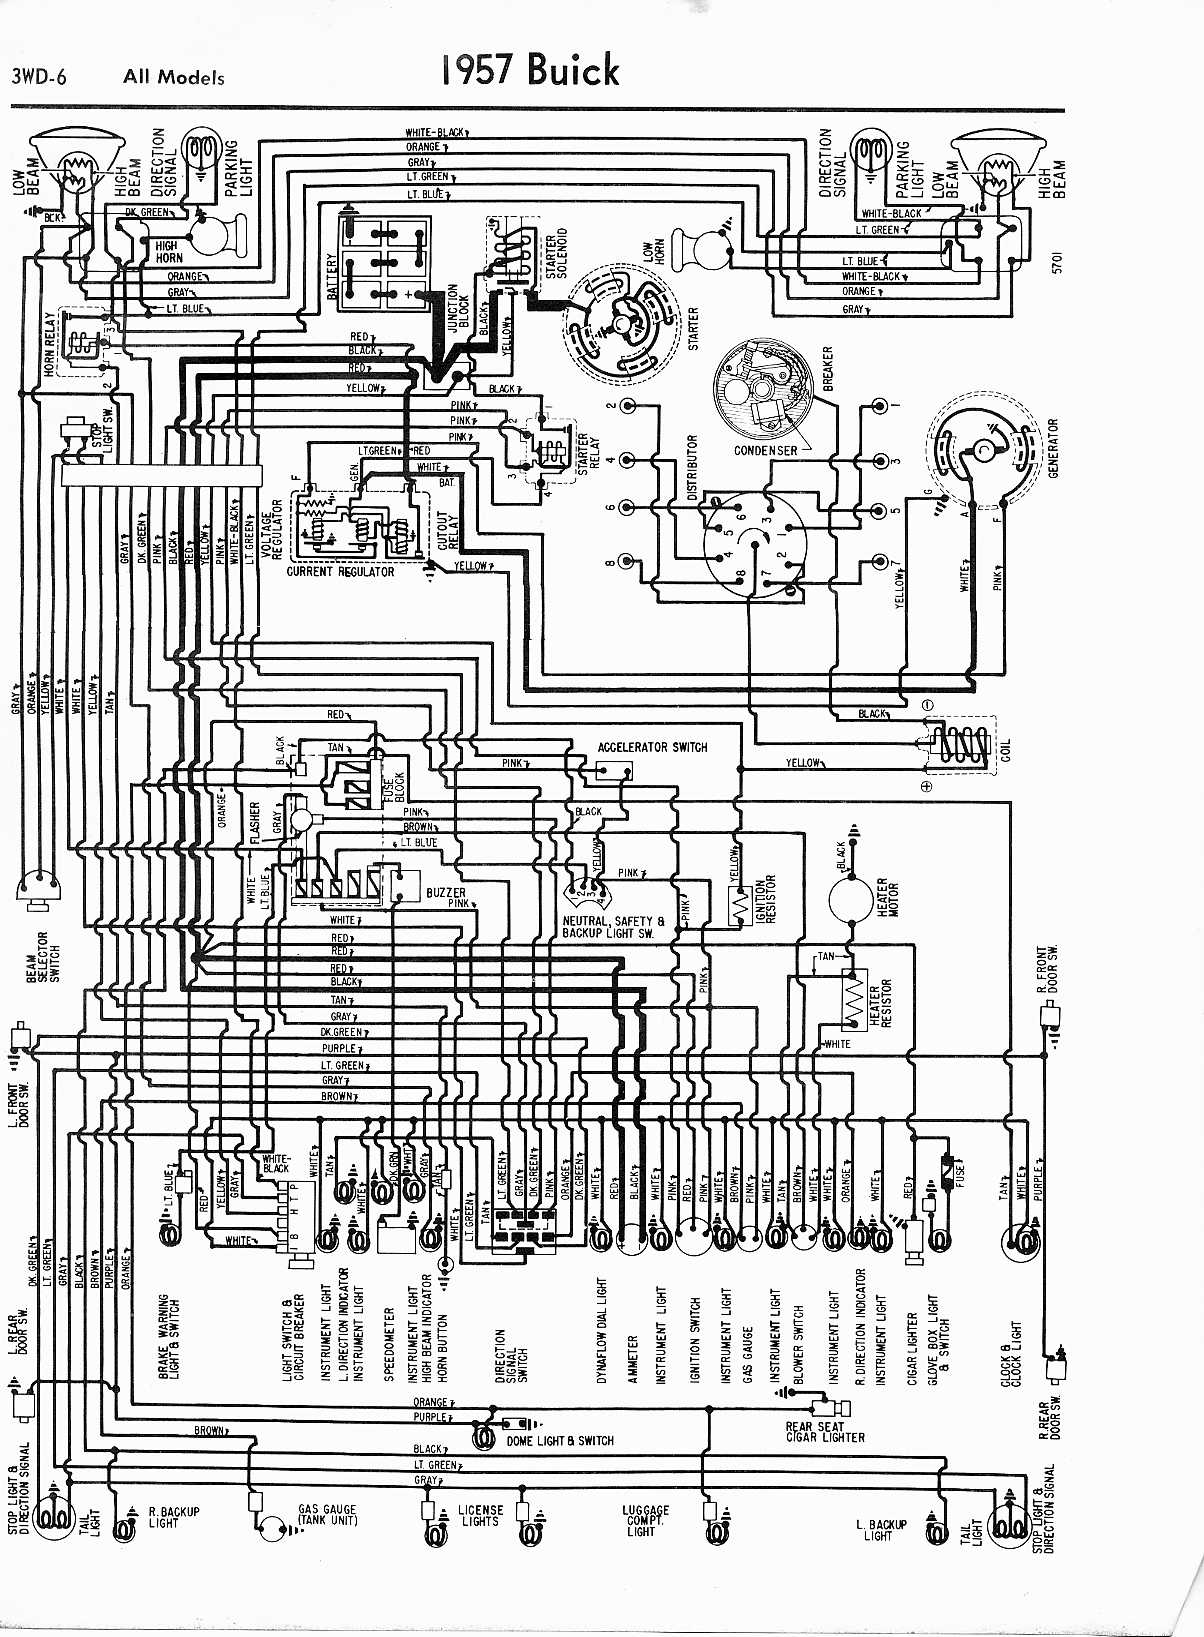 MWireBuic65_3WD 006 buick century wiring diagram buick rendezvous door lock diagram 2002 Trailblazer Door Wiring Diagram at crackthecode.co